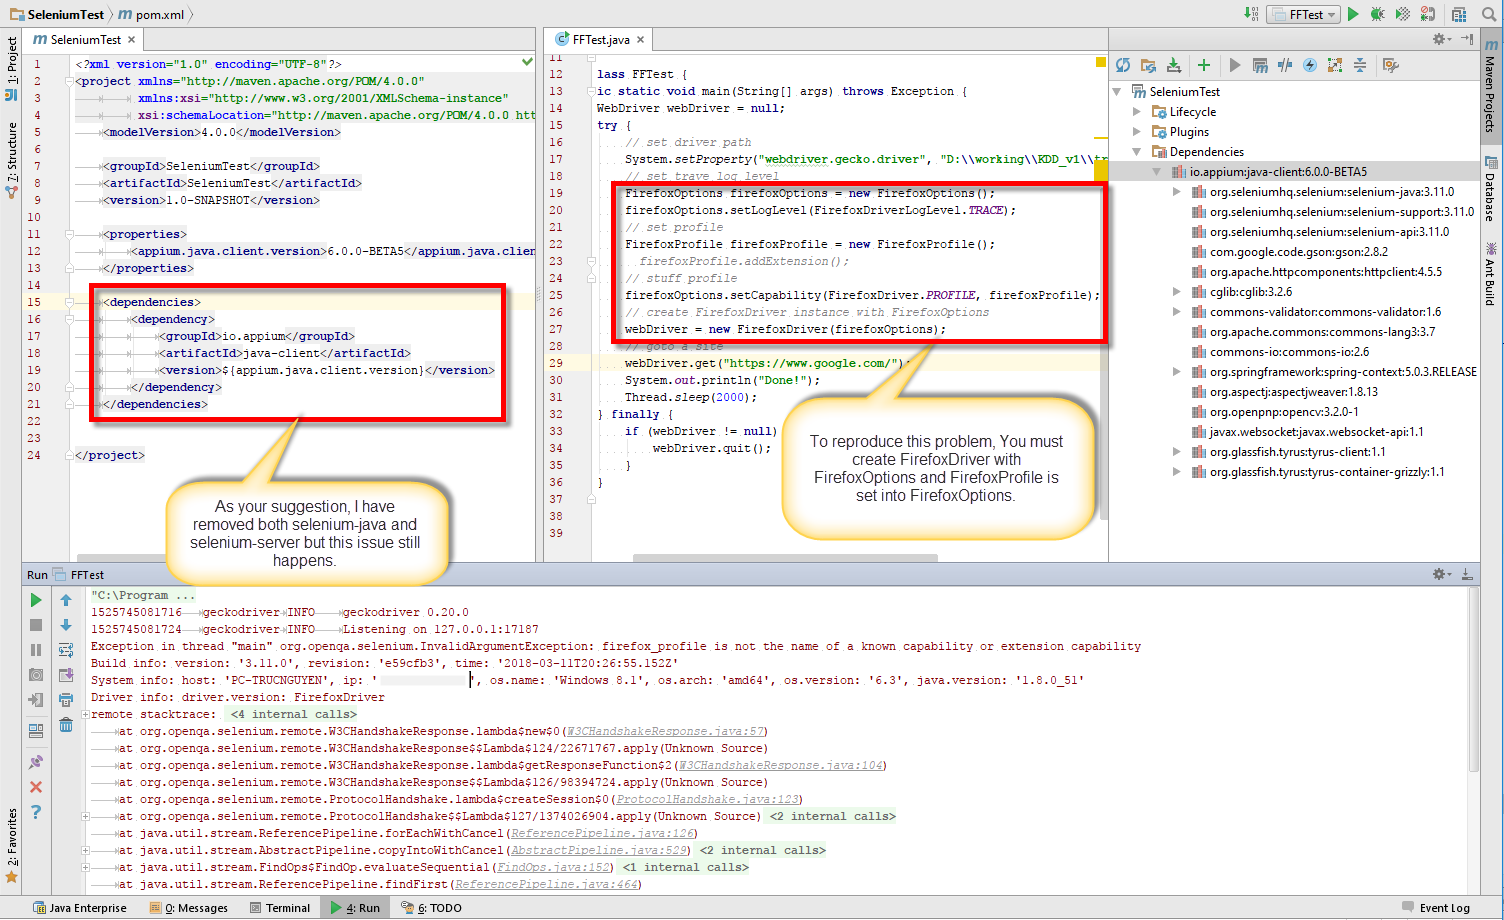 java-client's NewSessionPayload class conflict with